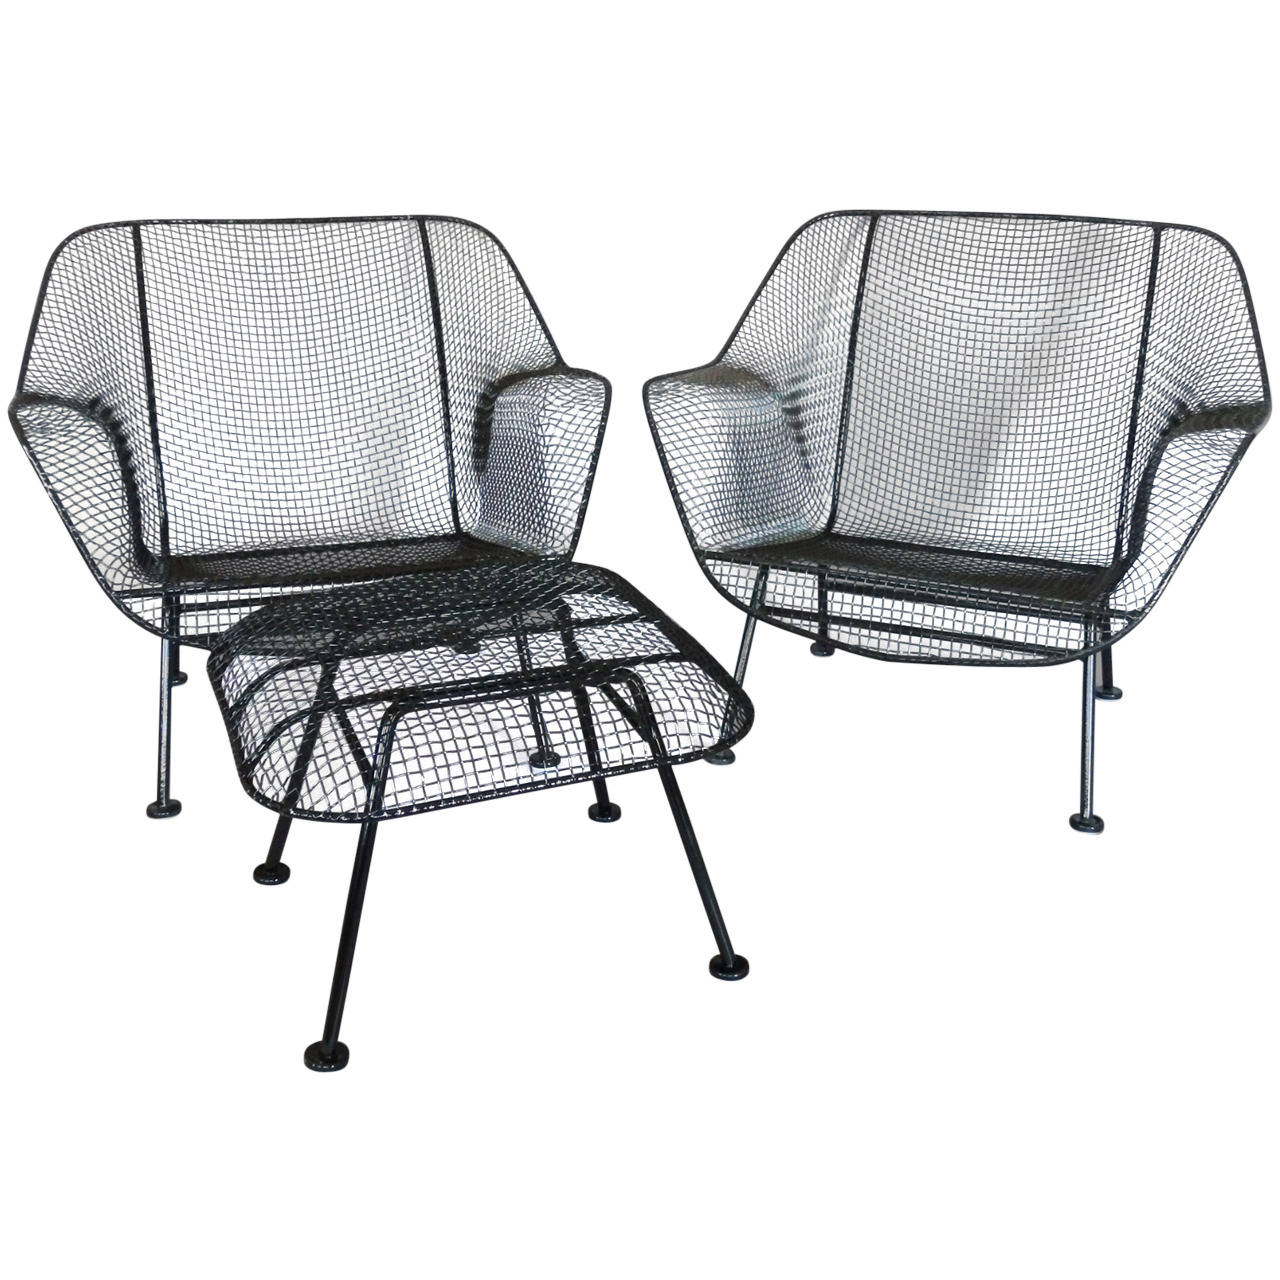 Pair of woodard wrought iron with mesh lounge chairs for for Iron furniture